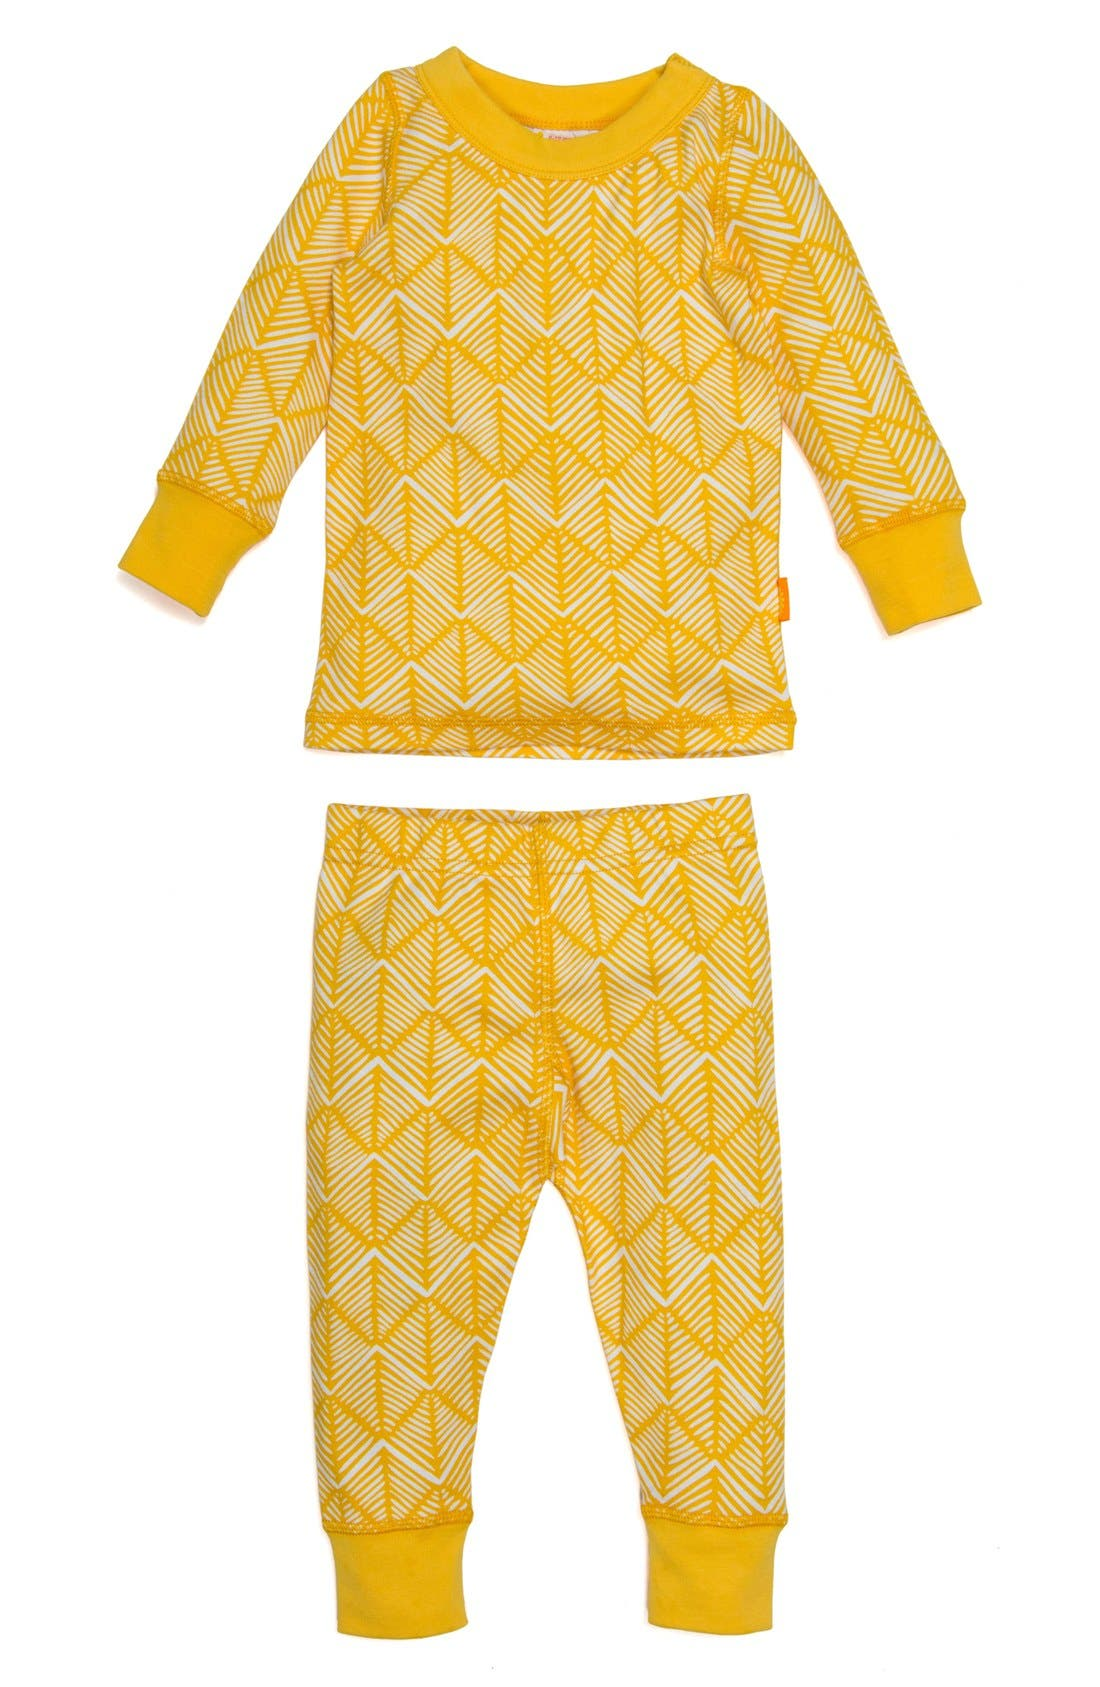 Alternate Image 1 Selected - Masalababy Diamond Hatch Fitted Two-Piece Pajamas (Toddler, Little Kids & Big Kids)